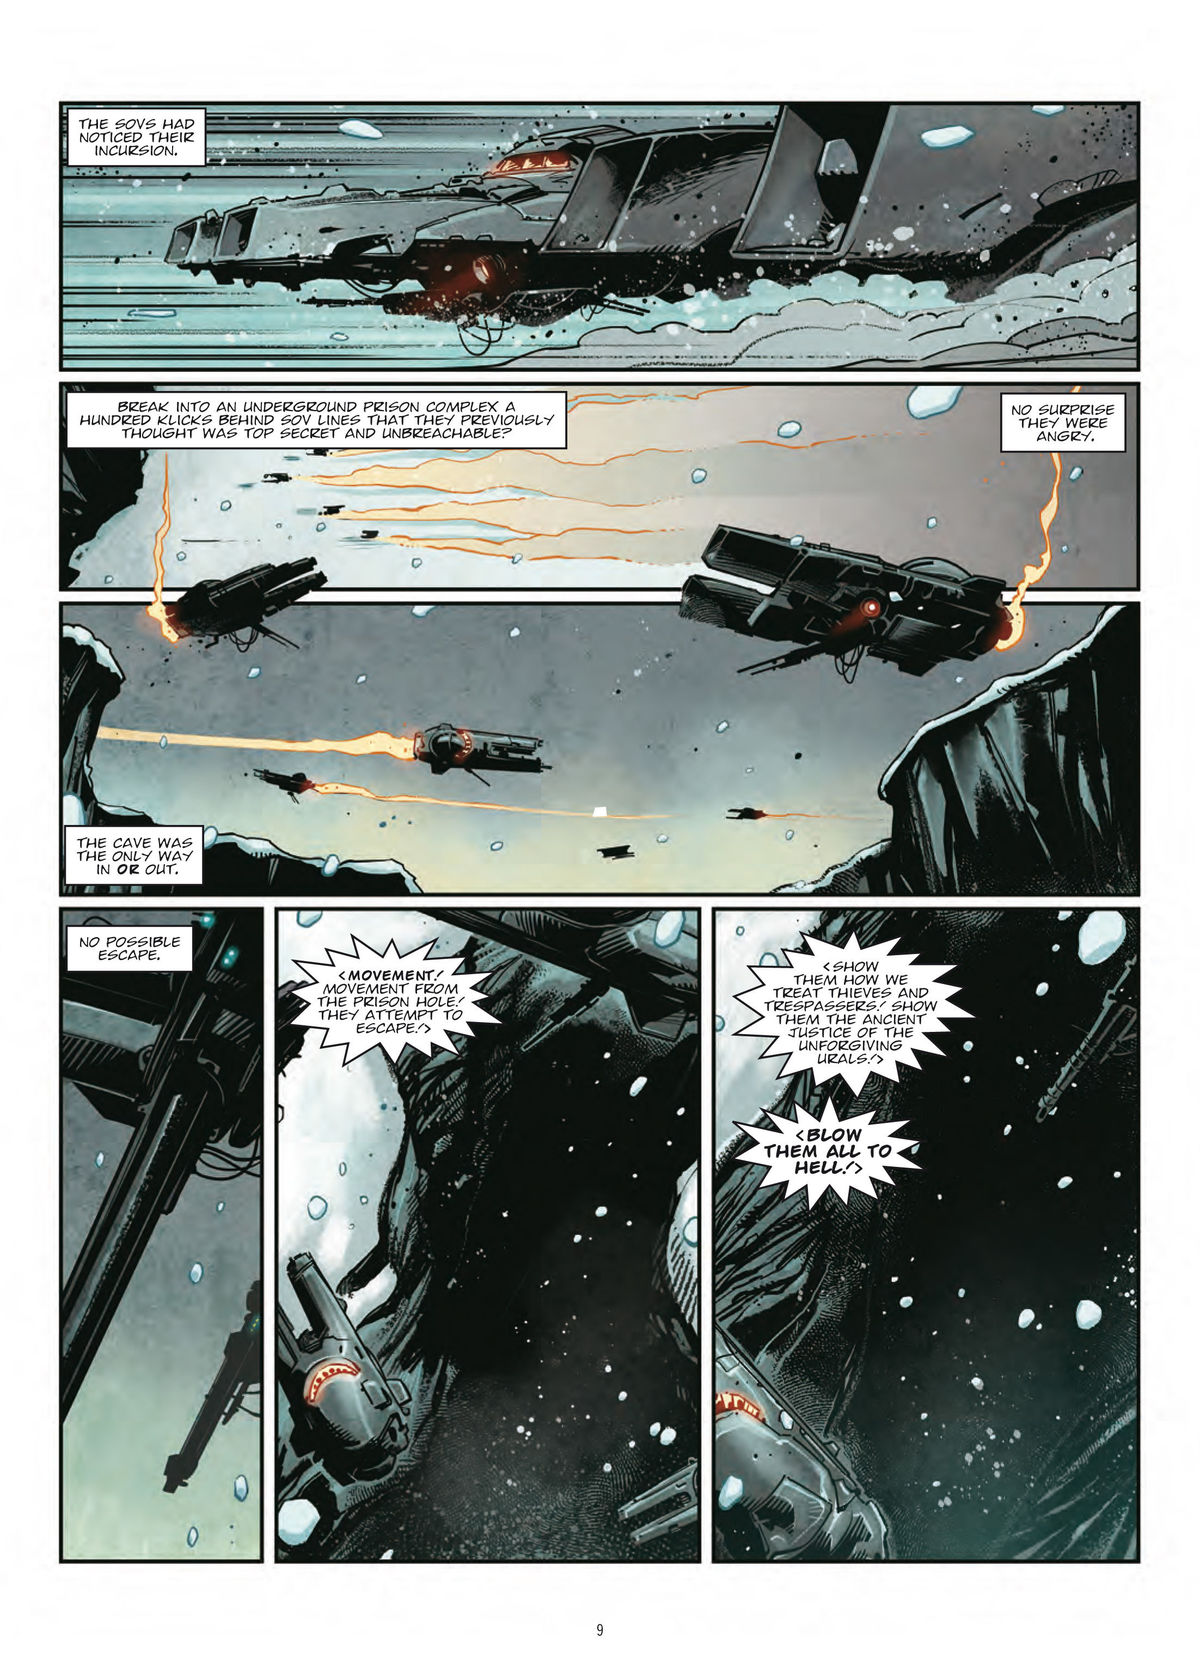 Exclusive preview: Fortify your winter with 2000 AD's frosty